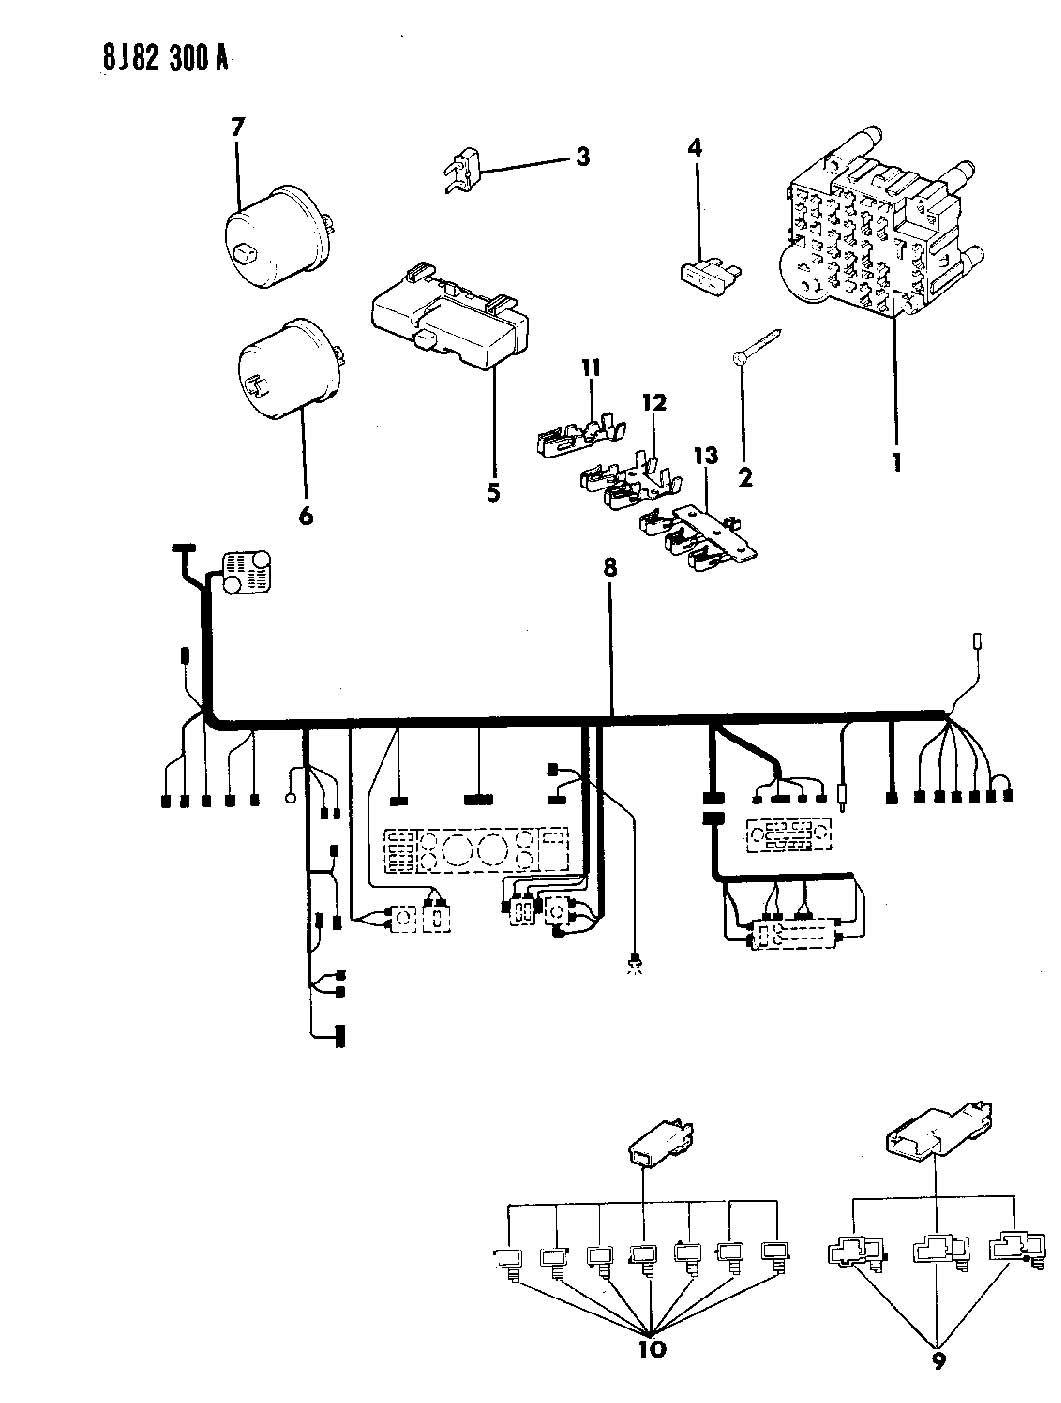 Wiring Diagram Furthermore Jeep Wrangler Yj Fuse Box On 1988 2001 Cherokee Sport Panel 89 Library